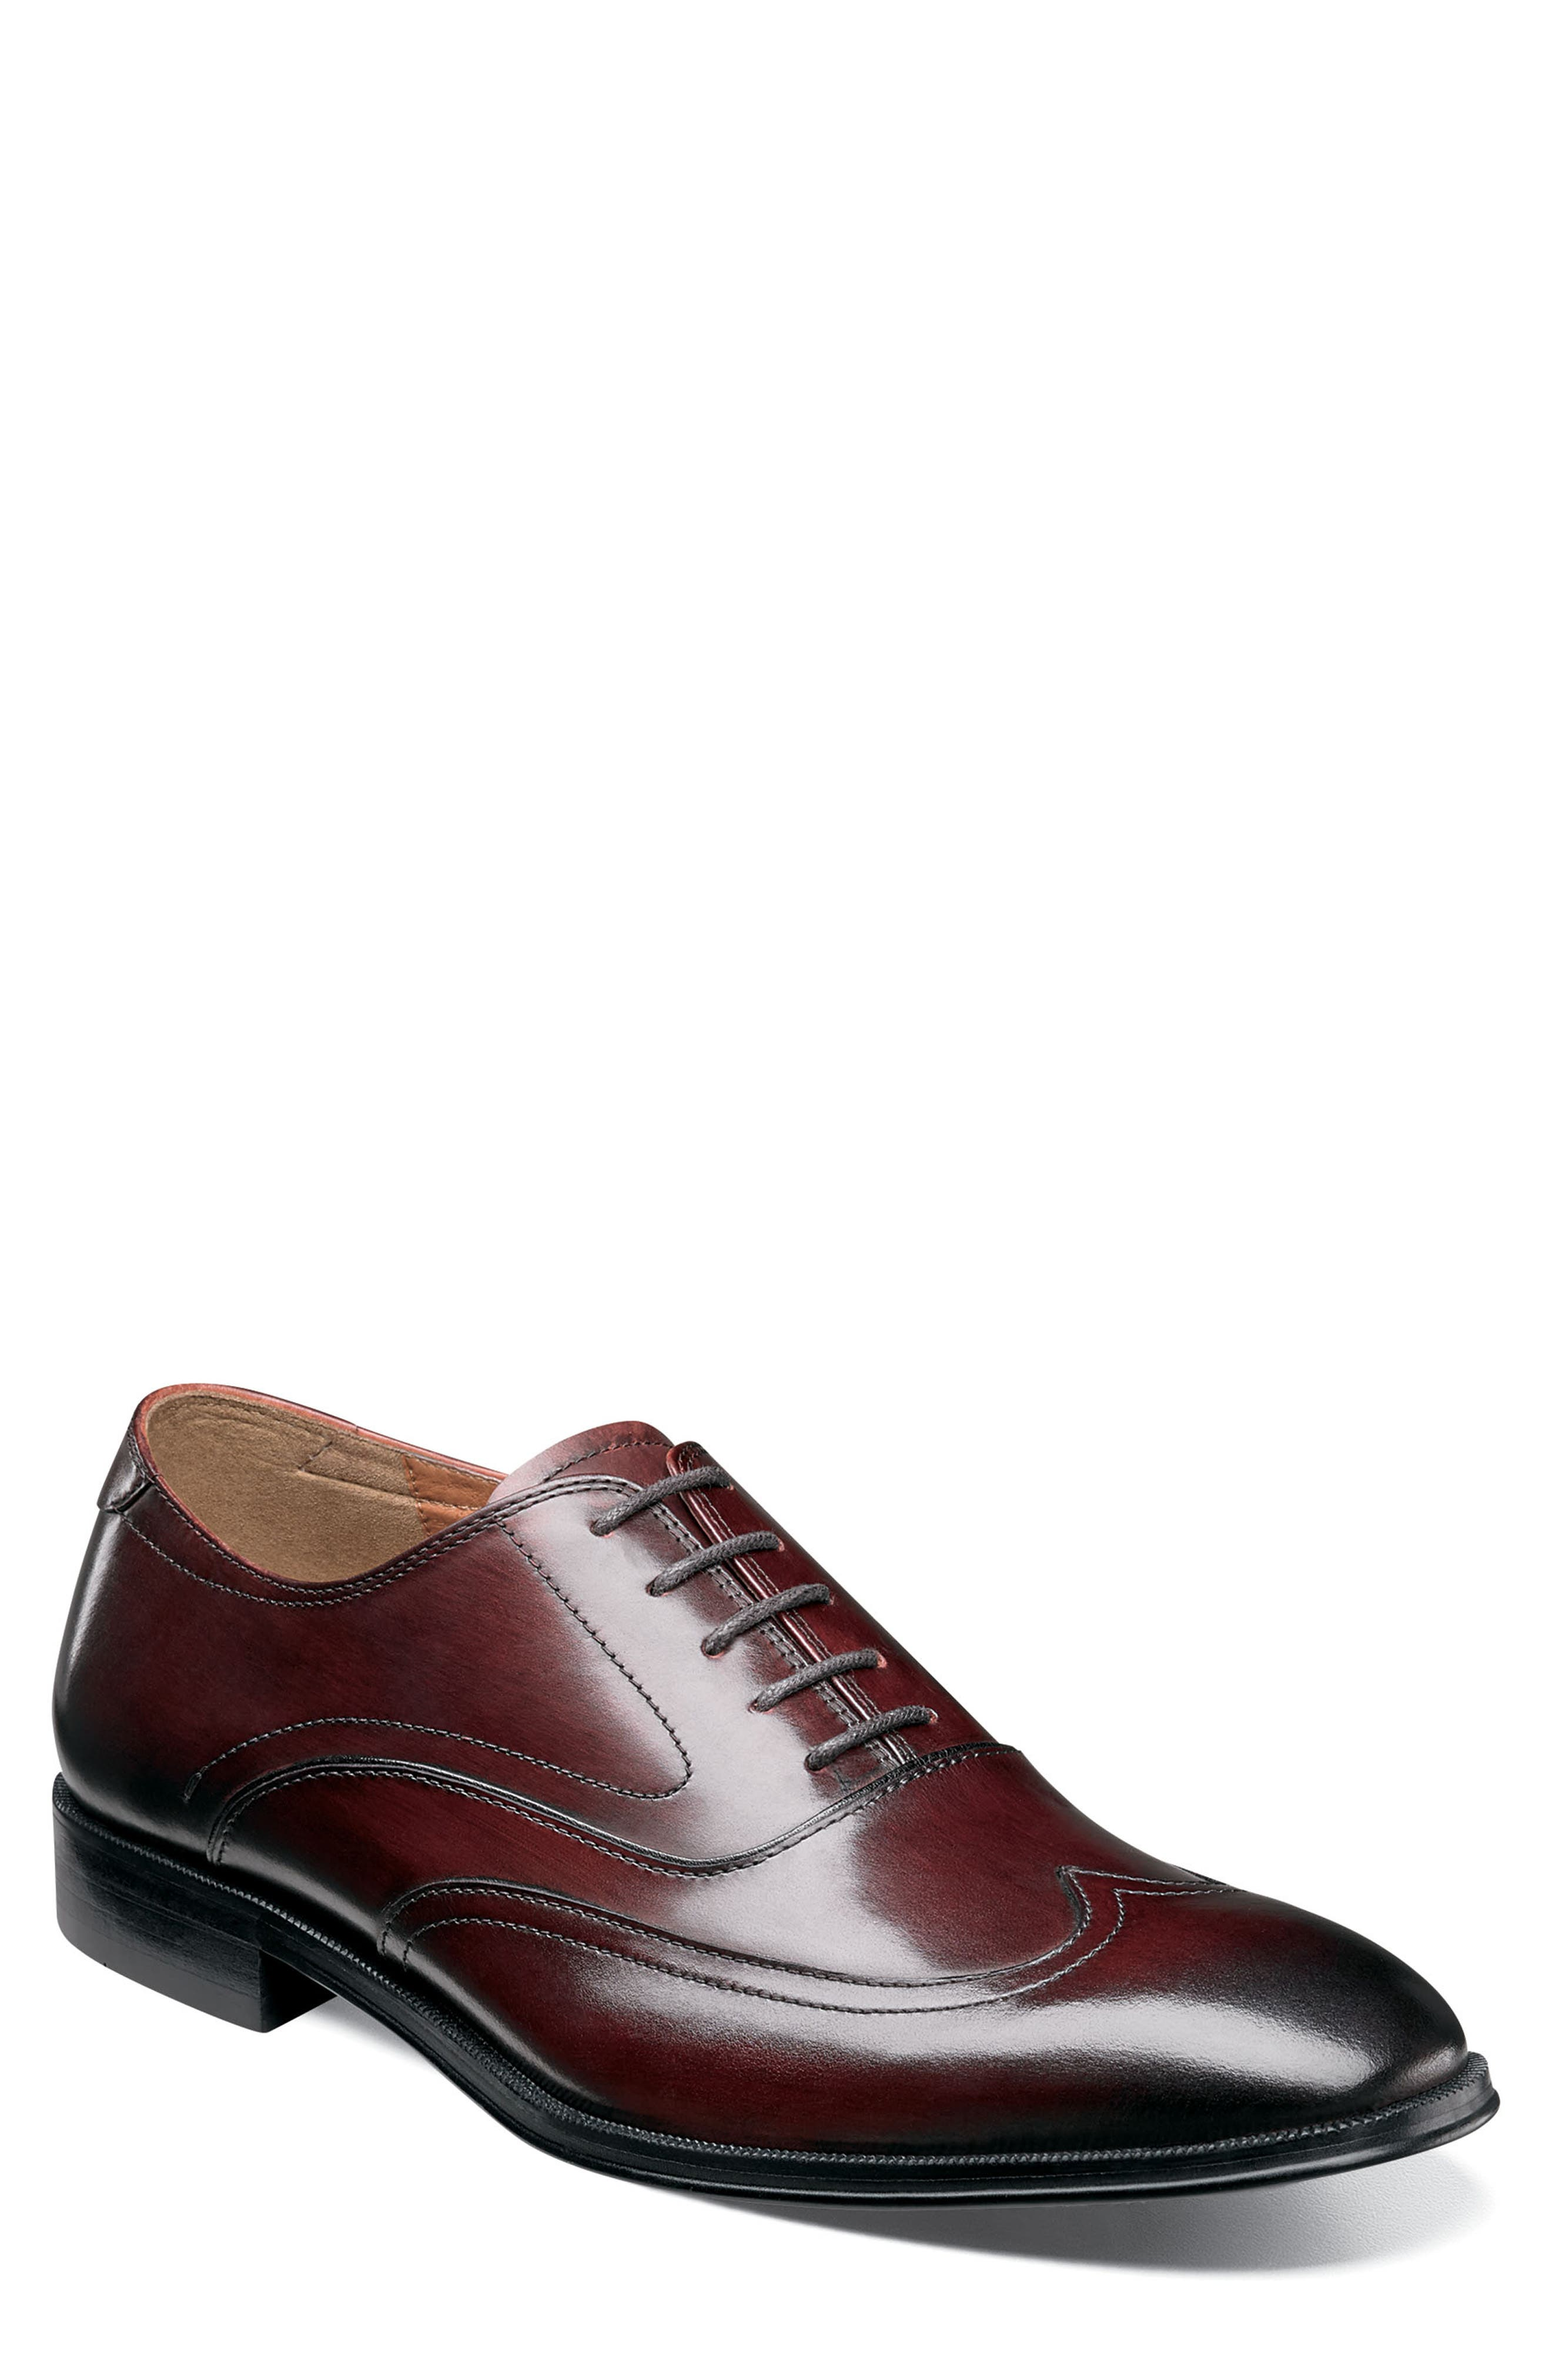 Belfast Wingtip,                             Main thumbnail 1, color,                             BURGUNDY LEATHER